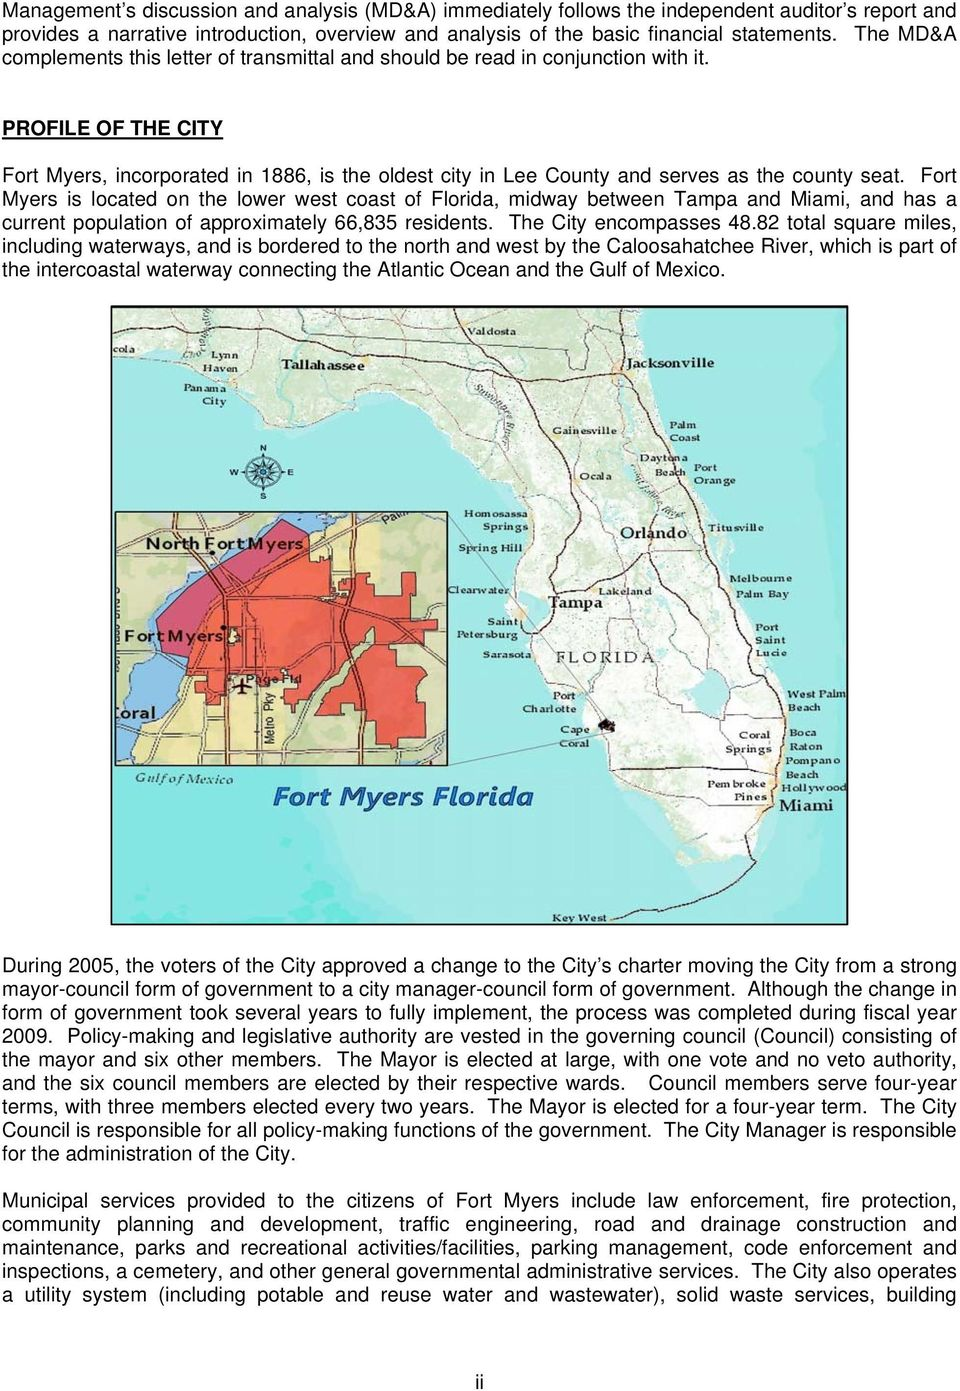 PROFILE OF THE CITY Fort Myers, incorporated in 1886, is the oldest city in Lee County and serves as the county seat.